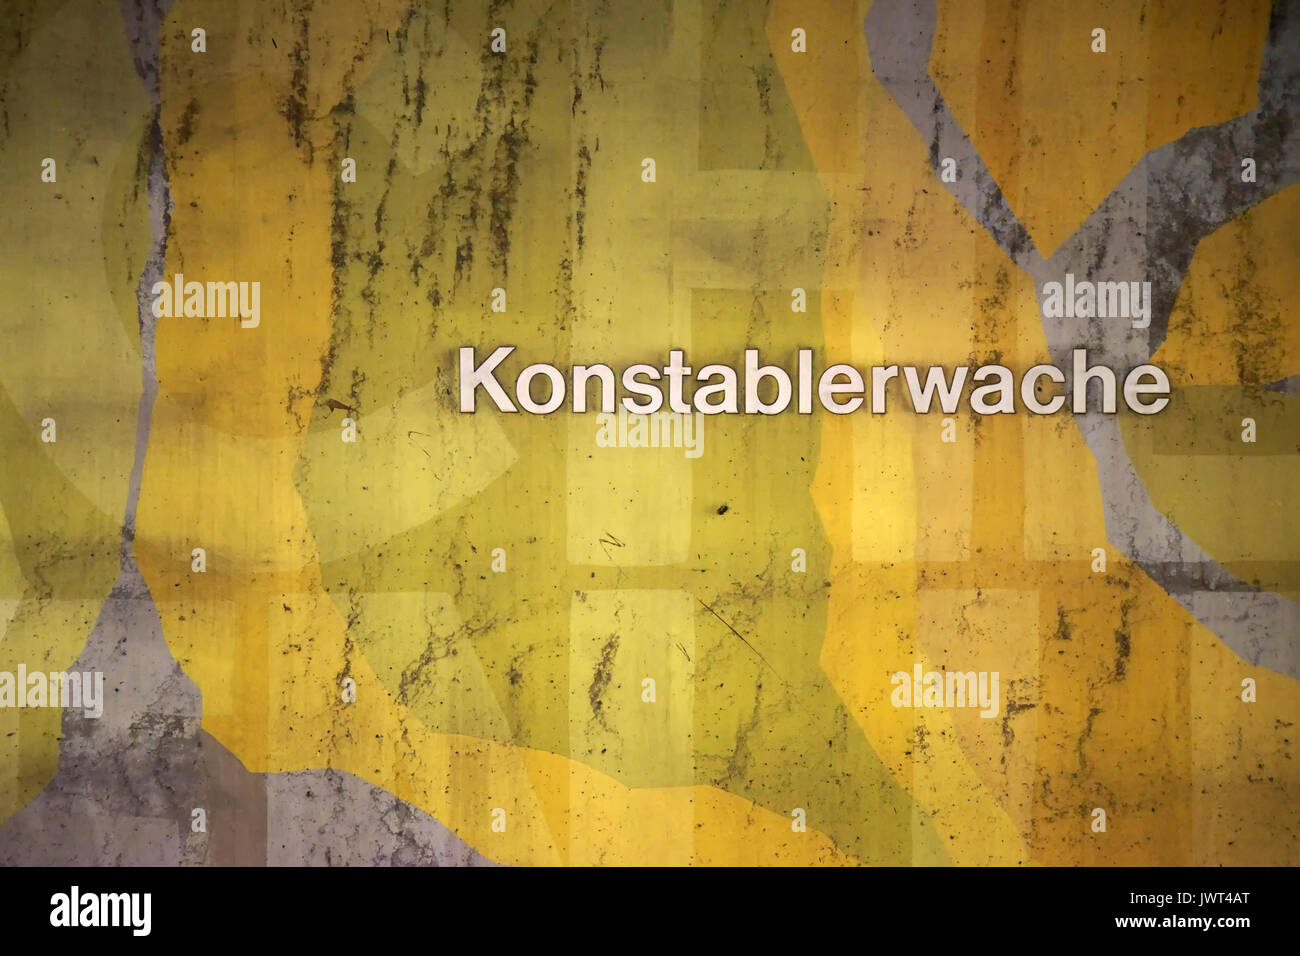 The sign of the subway station Konstablerwache on a wall patterned ...